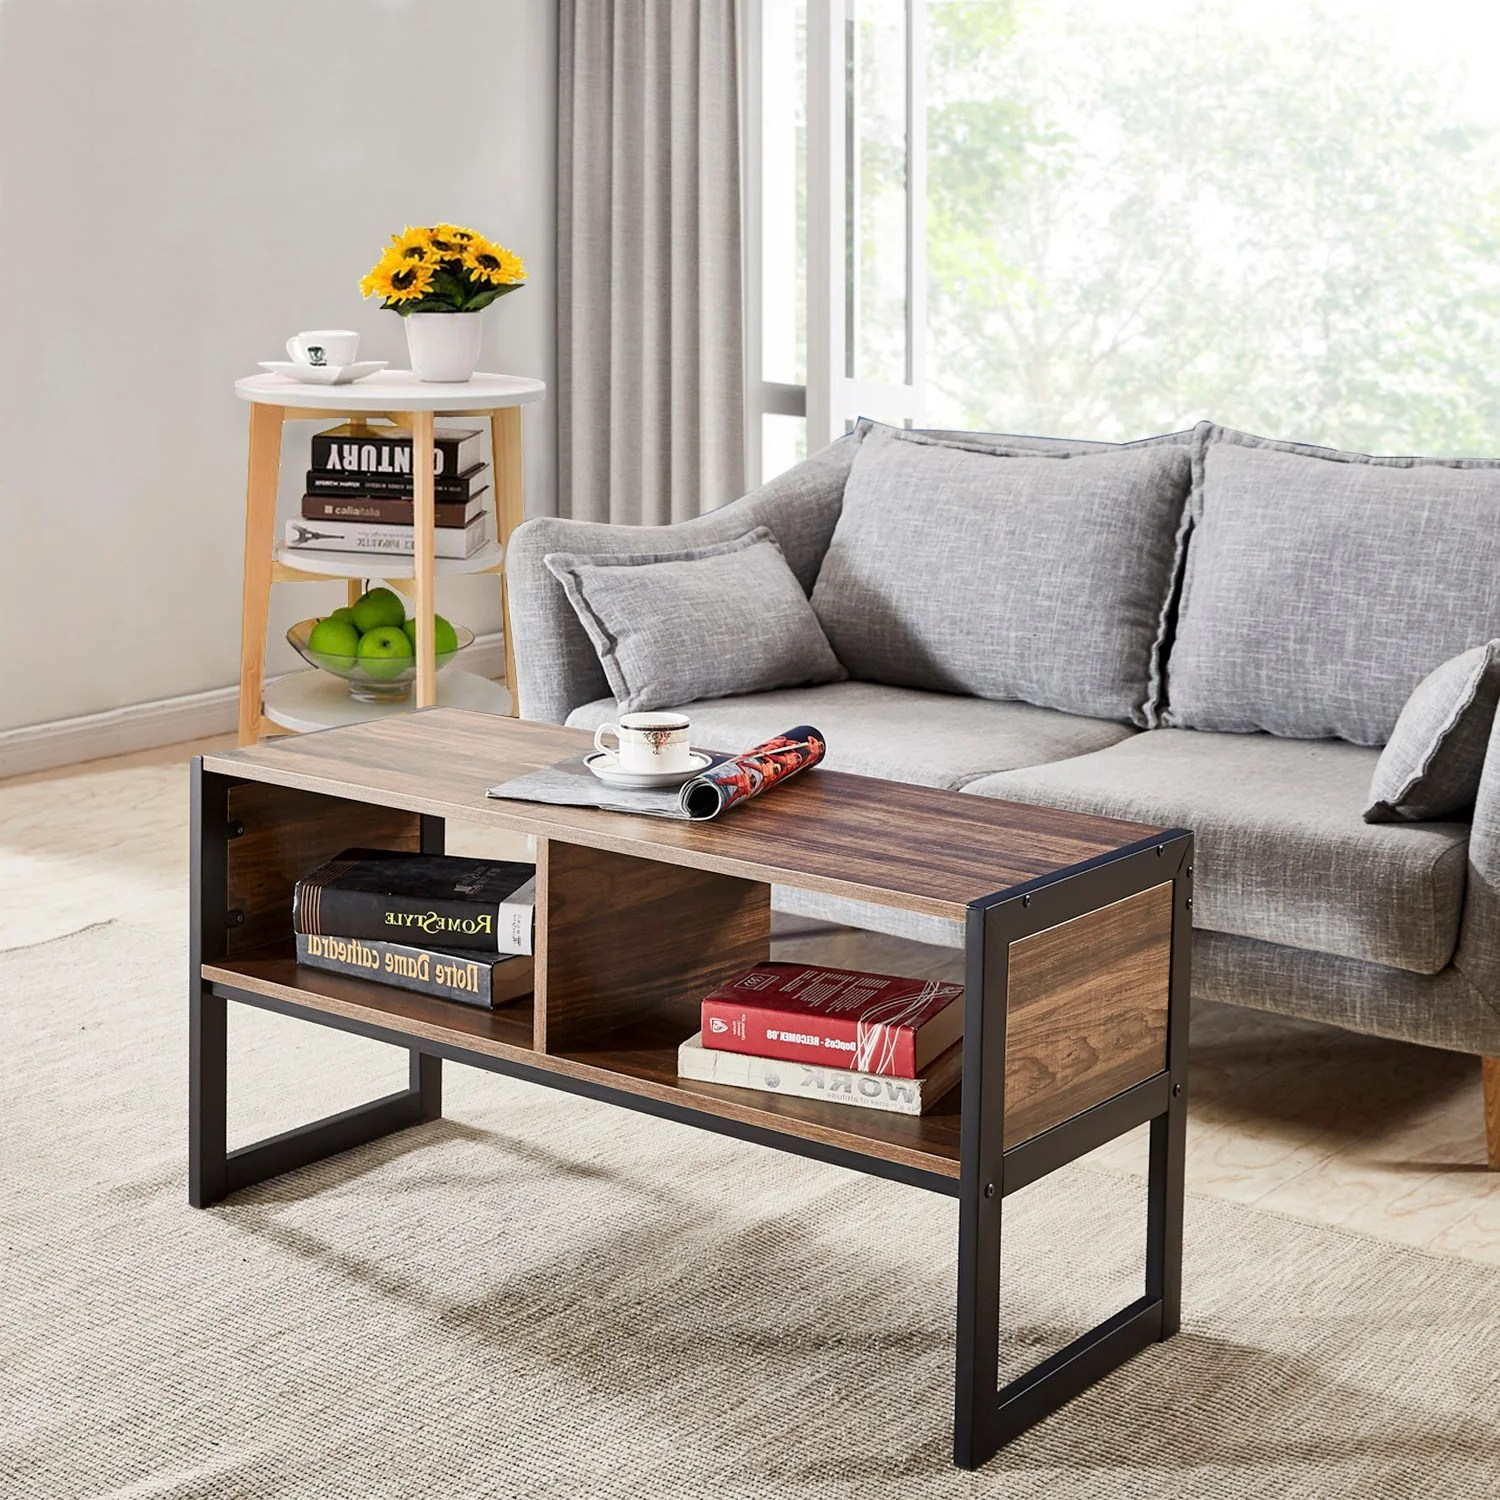 Modern Coffee Table With Storage Buy Mid Century Modern Coffee Tables Online At Overstock Our